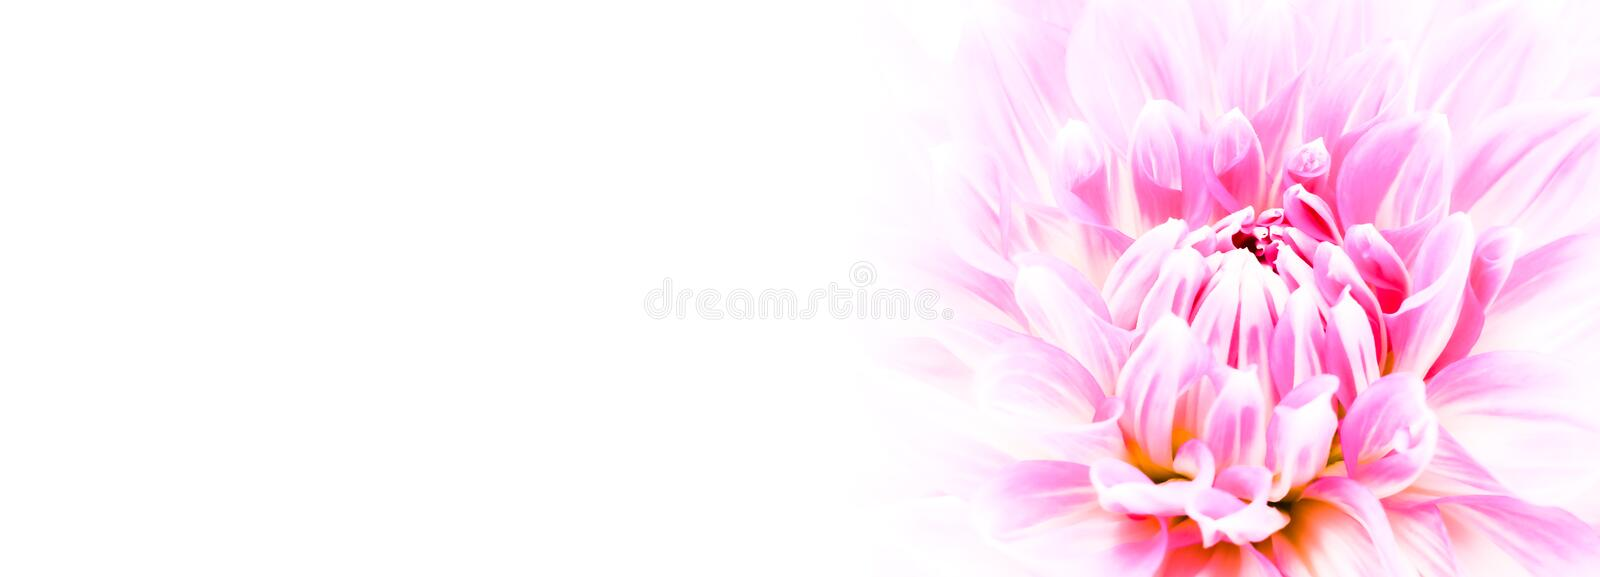 White and purple pink colourful dahlia flower macro photo with intense vivid colors in white wide banner empty background panorama. With large negative space stock photos